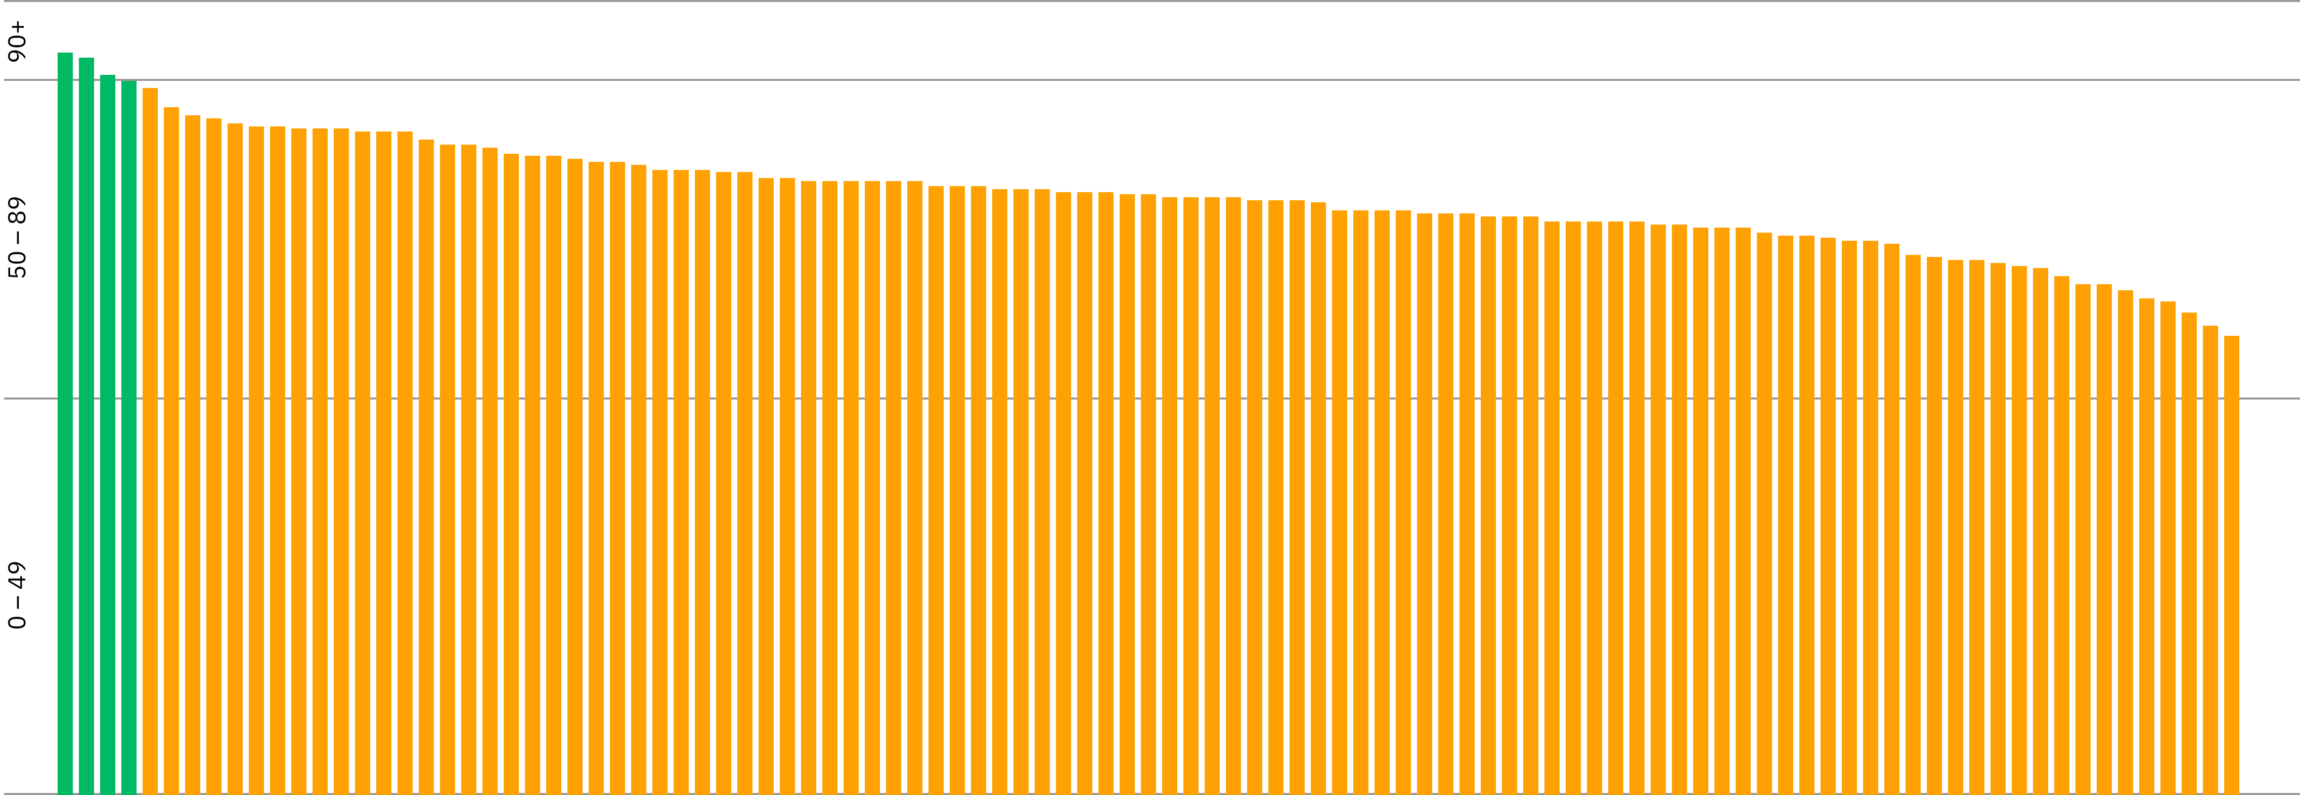 Bar chart showing the AJ100 websites overall scores.